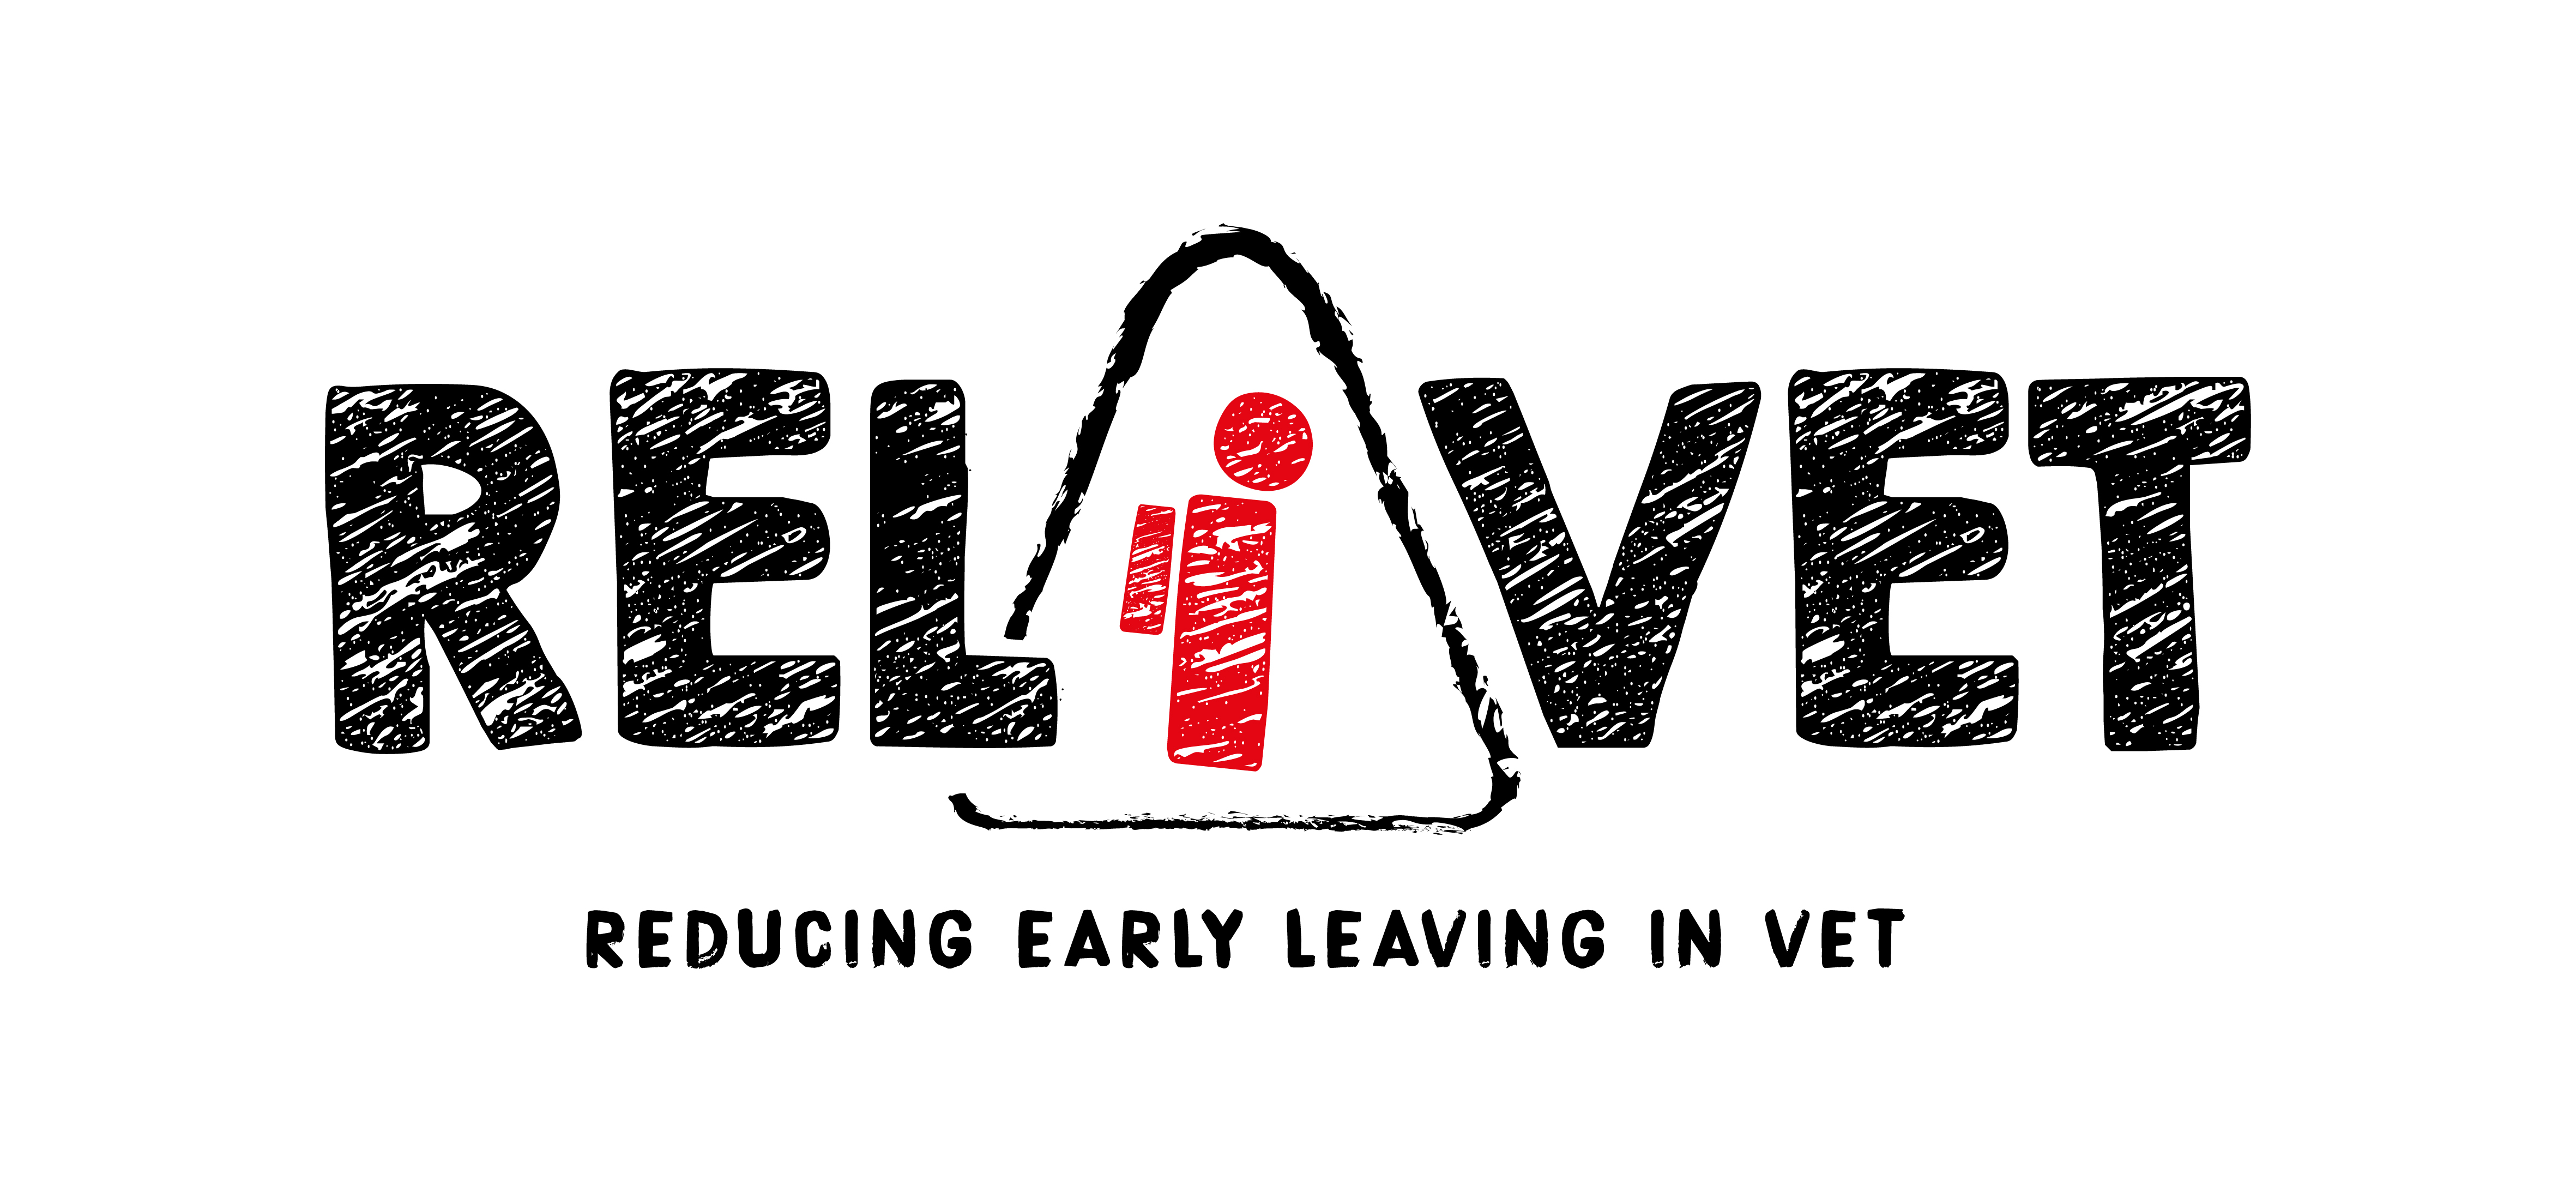 Project Reducing Early Leaving in VET